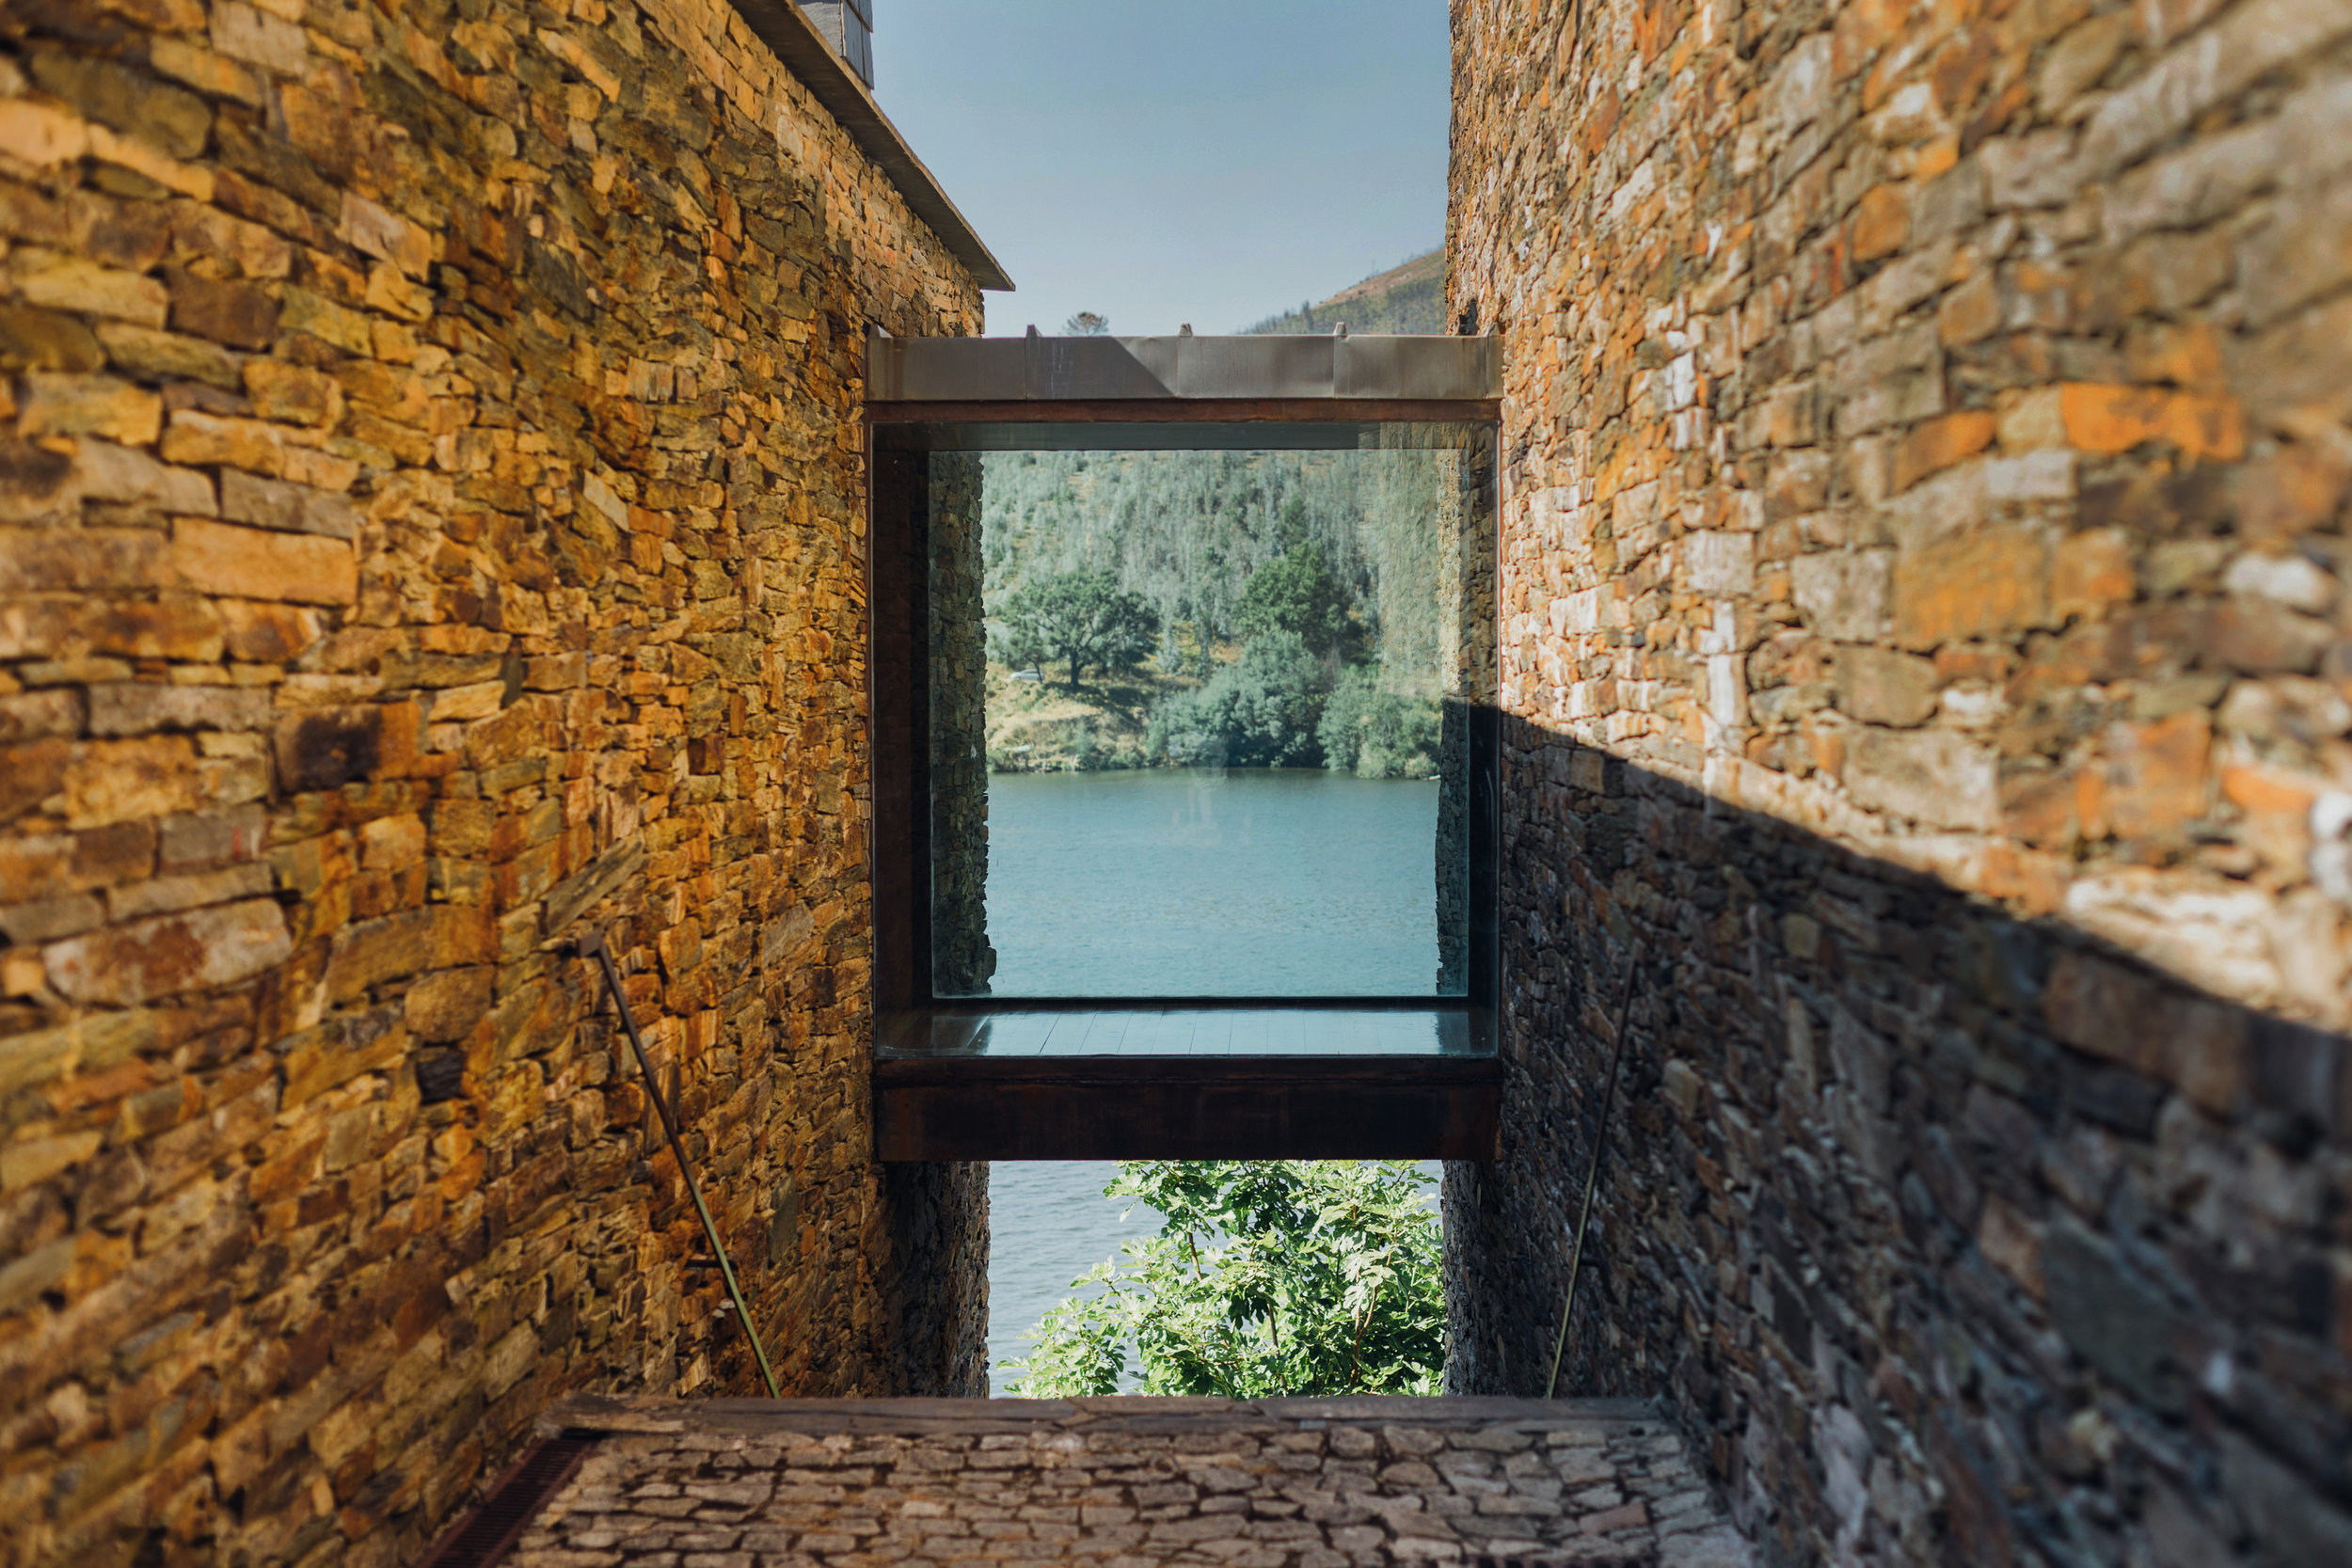 The Douro41 Hotel and Spa - PORTUGAL